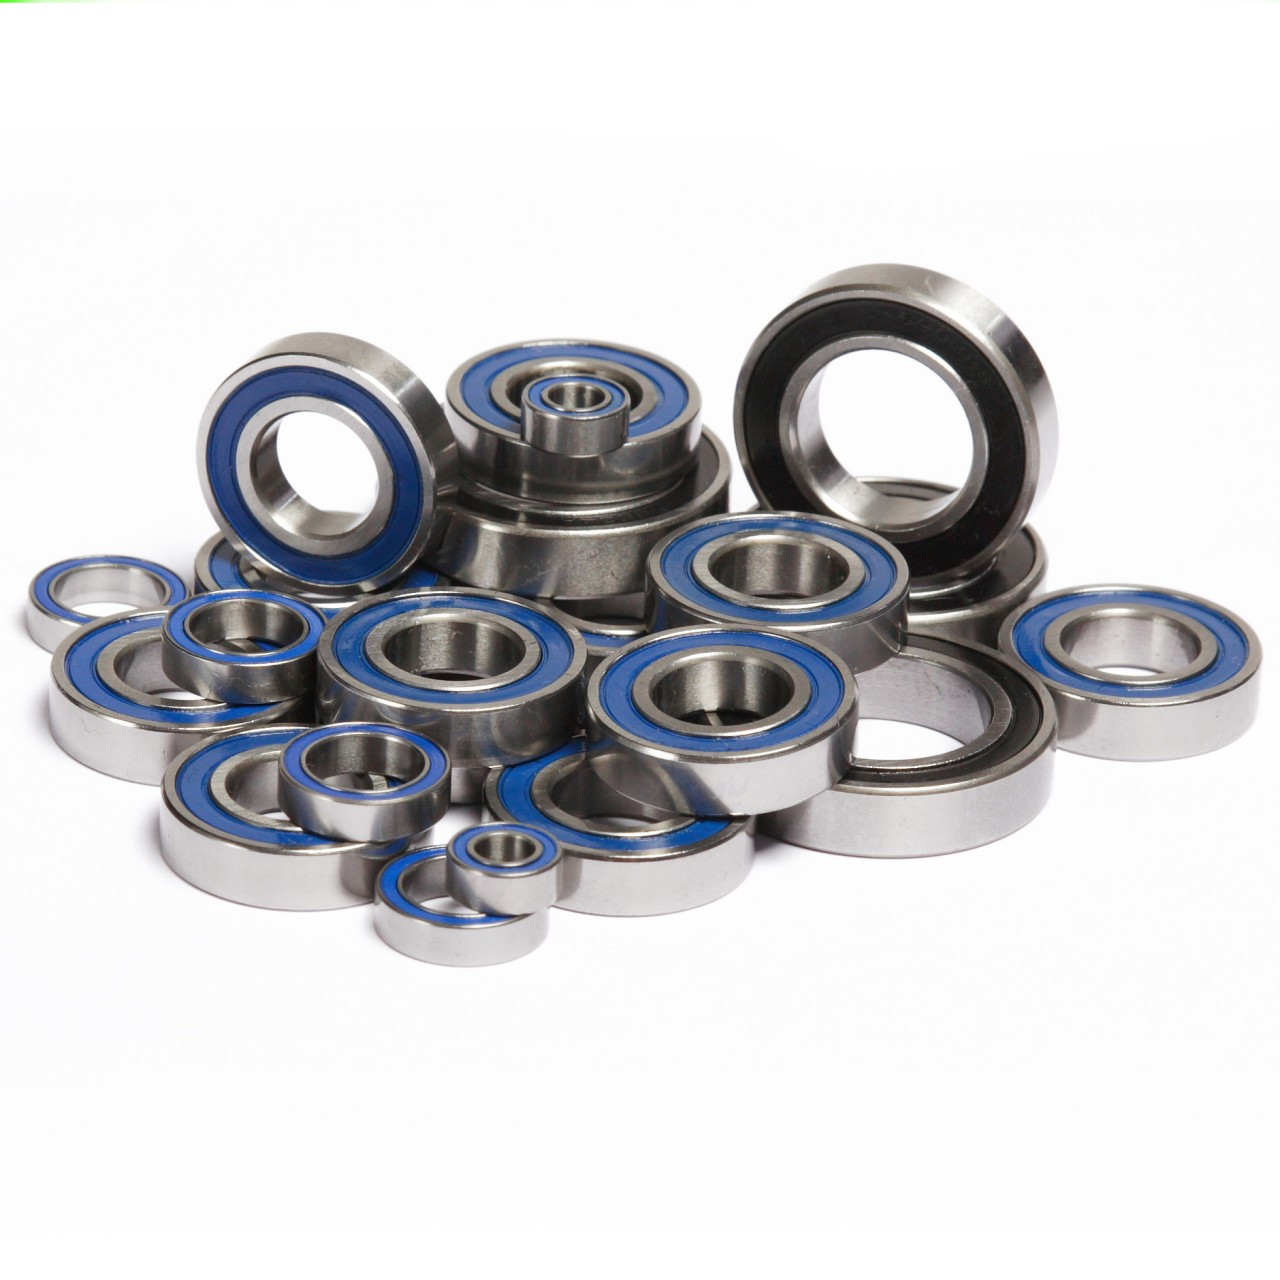 HPI Baja 5B 5T and 5SC complete rubber sealed bearing kit.  Comes with a full 26 pieces and replaces all bearings on your truck.